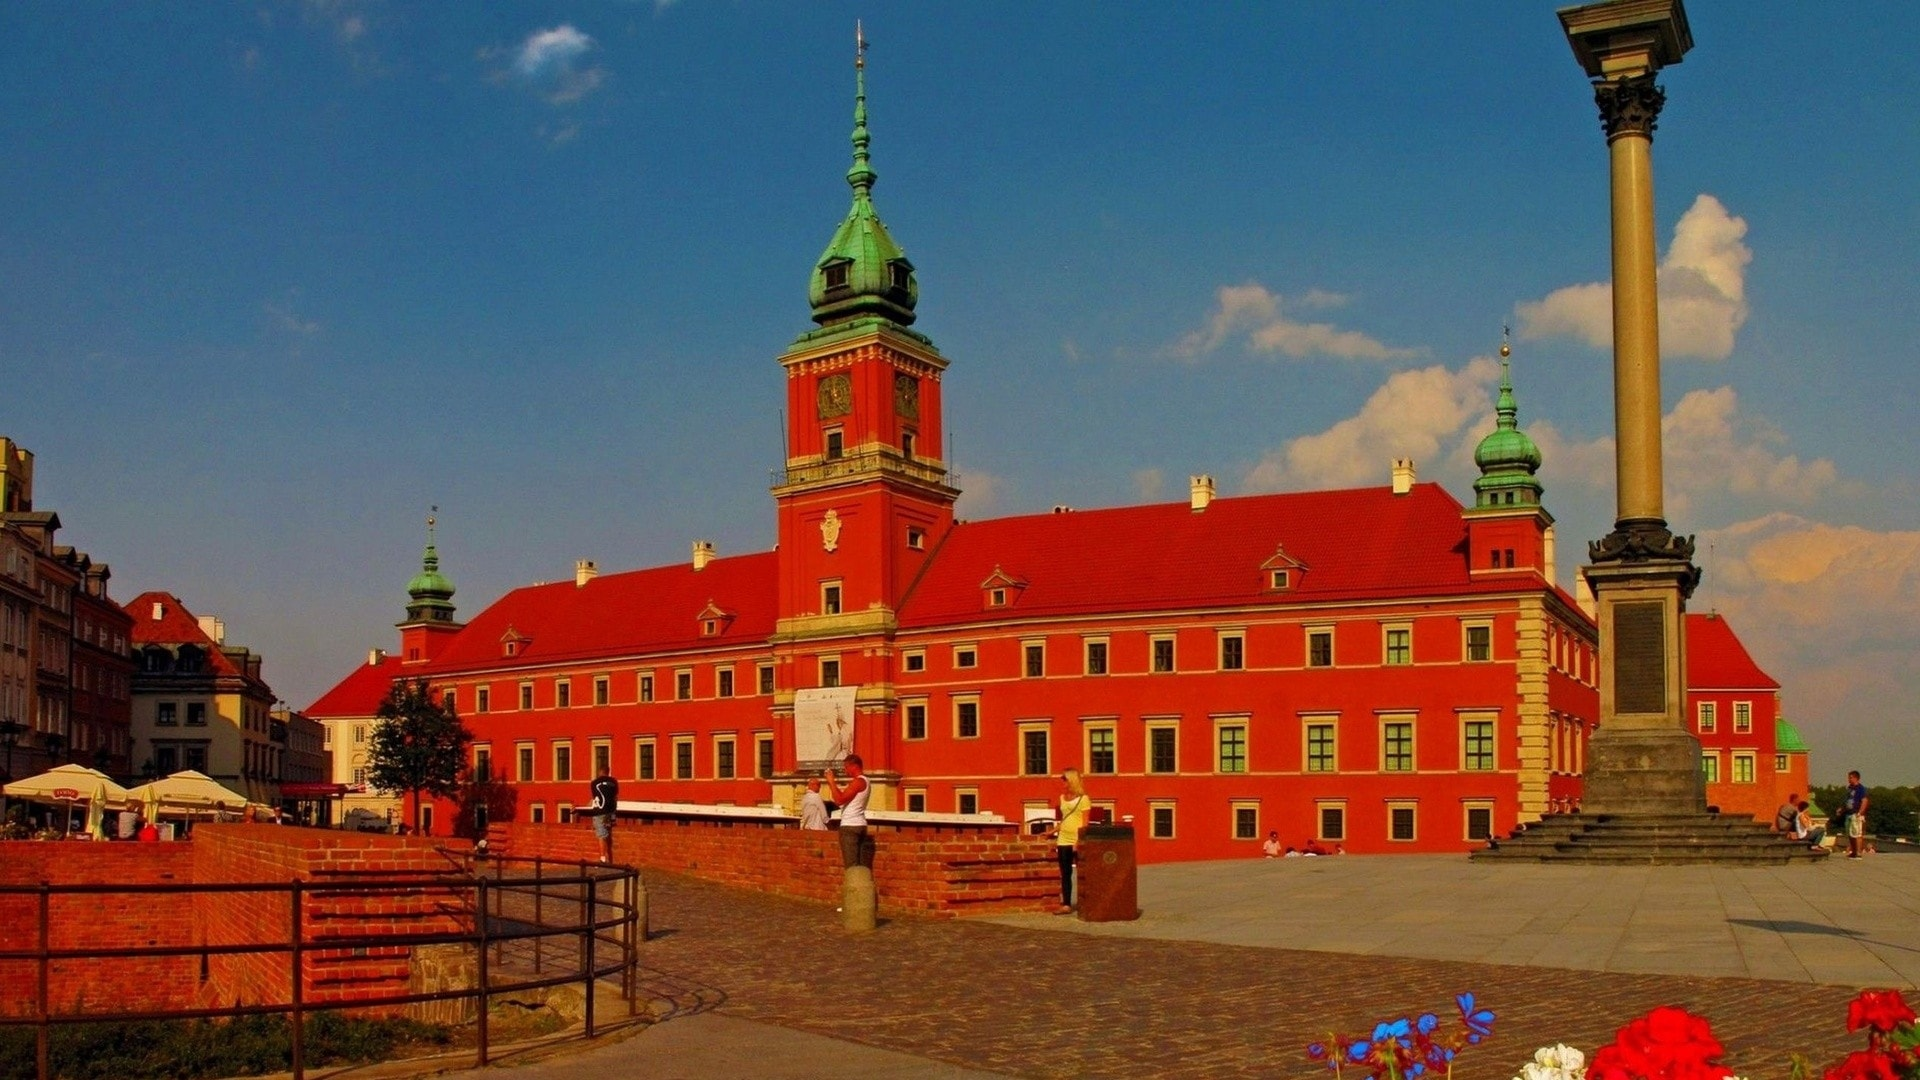 Warsaw widescreen for desktop